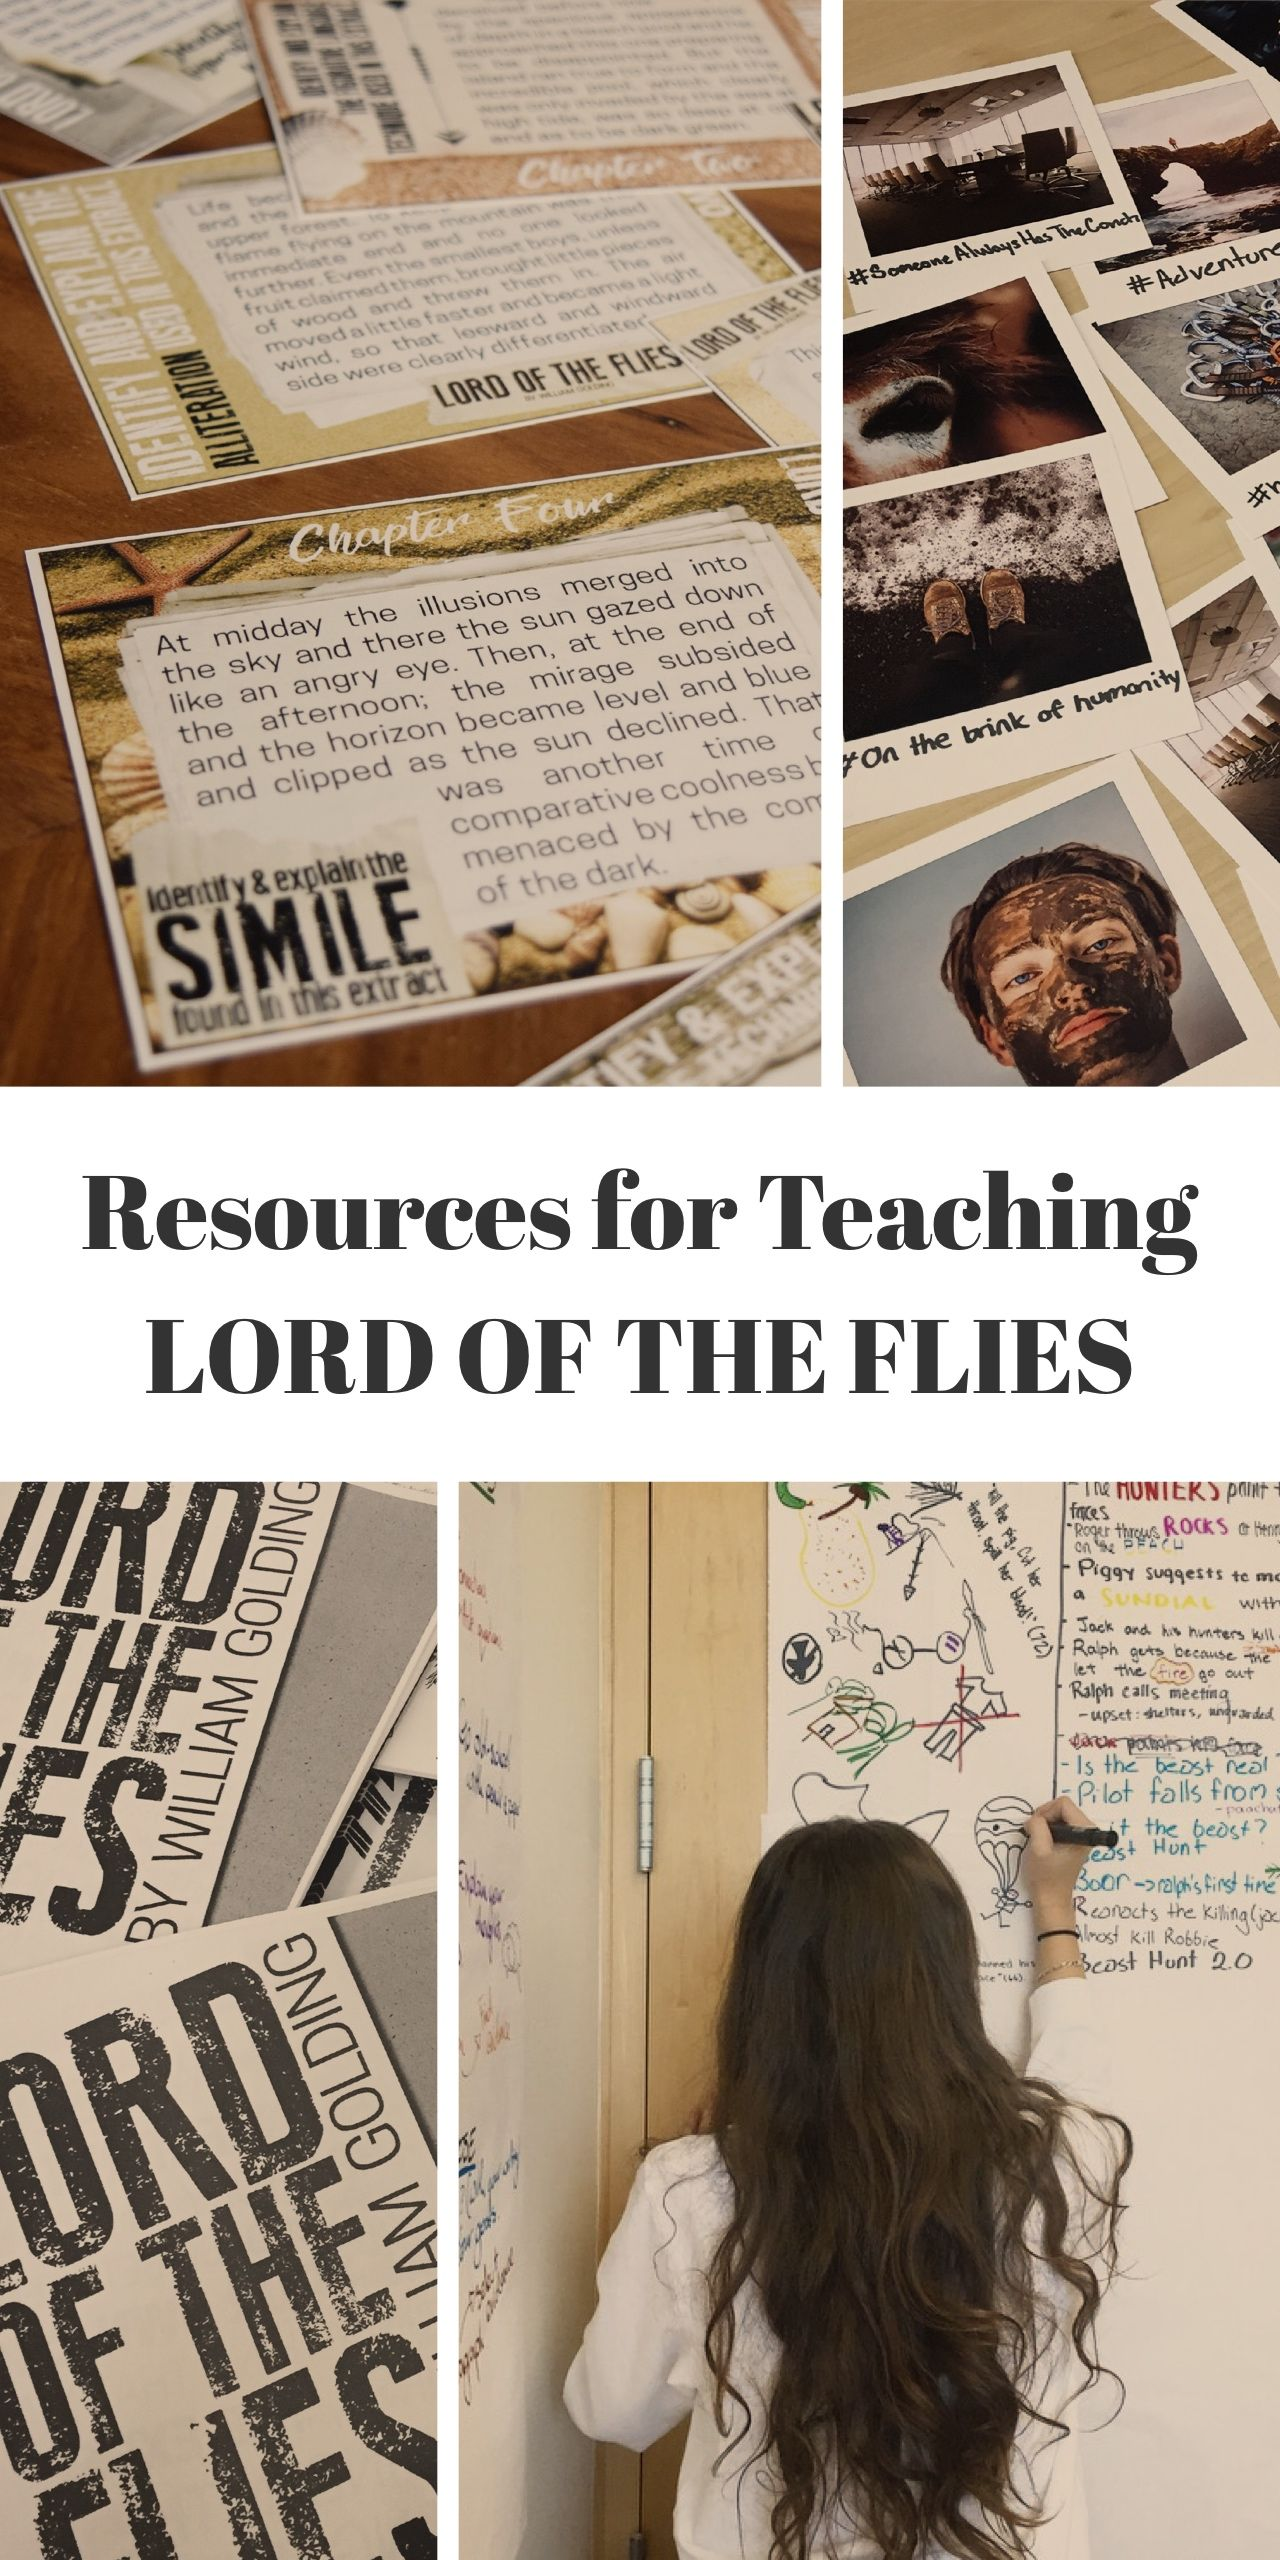 Resource For Teaching Golding S Lord Of The Flie Lesson Plan Workbook Task Card And More English Teacher High School Ela Poisonwood Bible Essay Study Guide Question Answer Ap Literature Sample